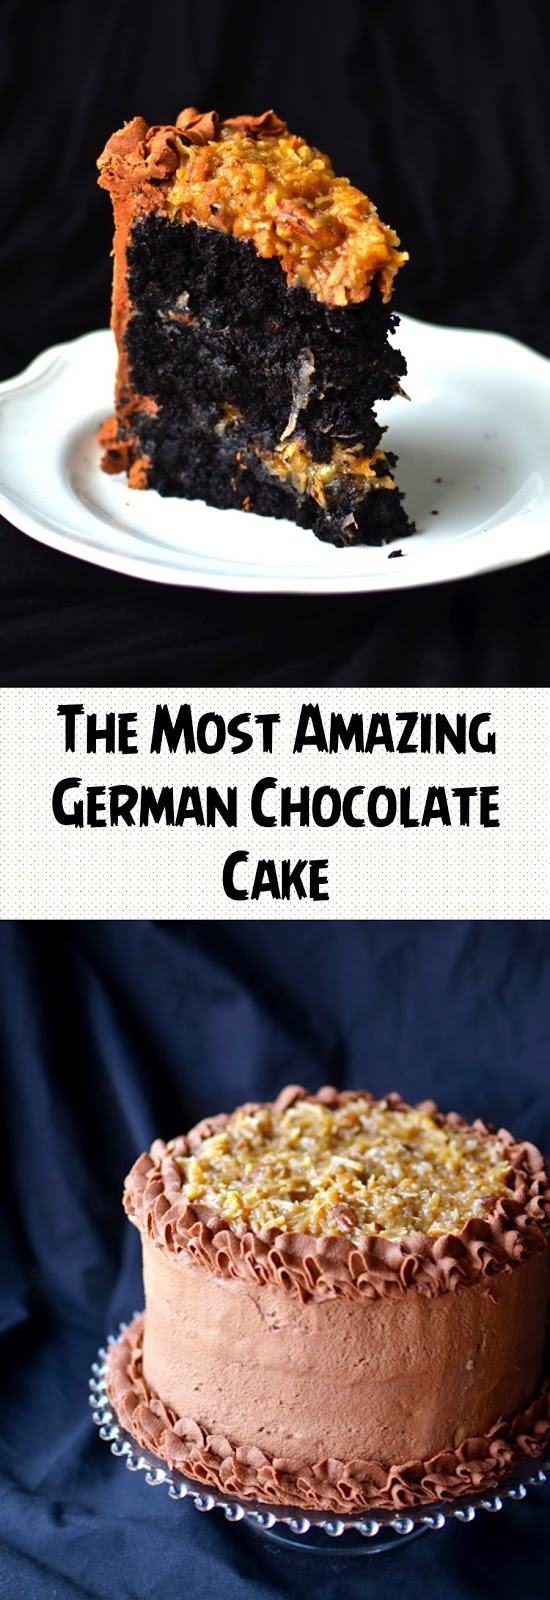 The Most Amazing German Chocolate Cake